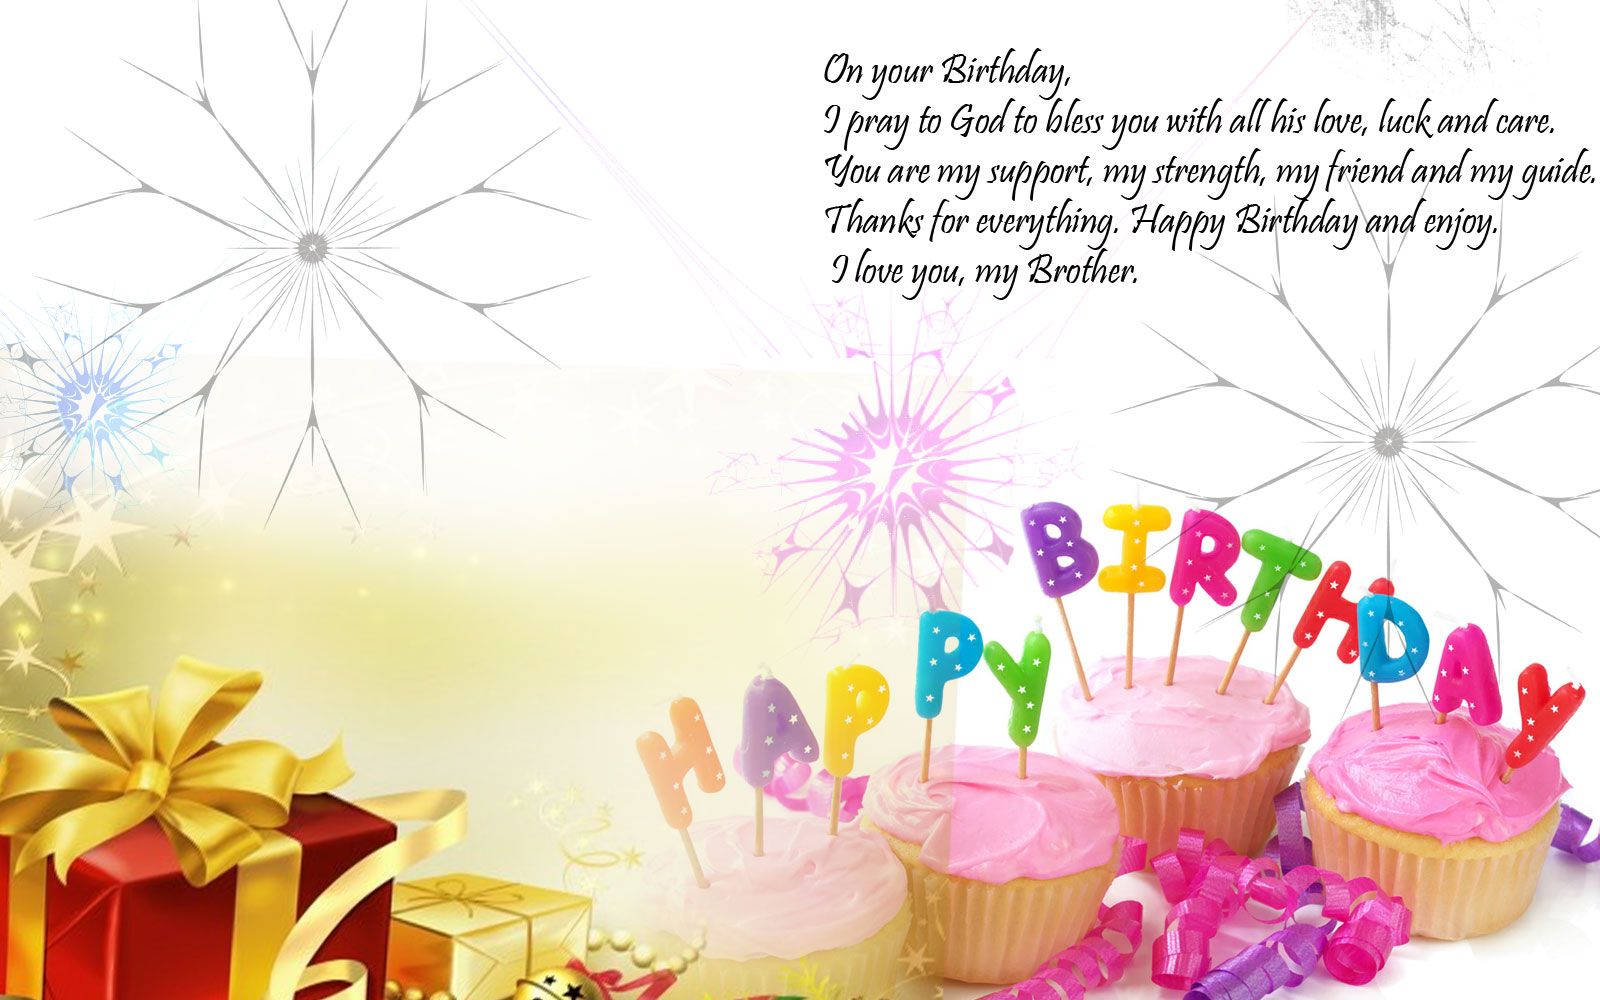 birthday greetings wallpaper ; e3cb2a6f1112aaf2538b29f3a538b5f3